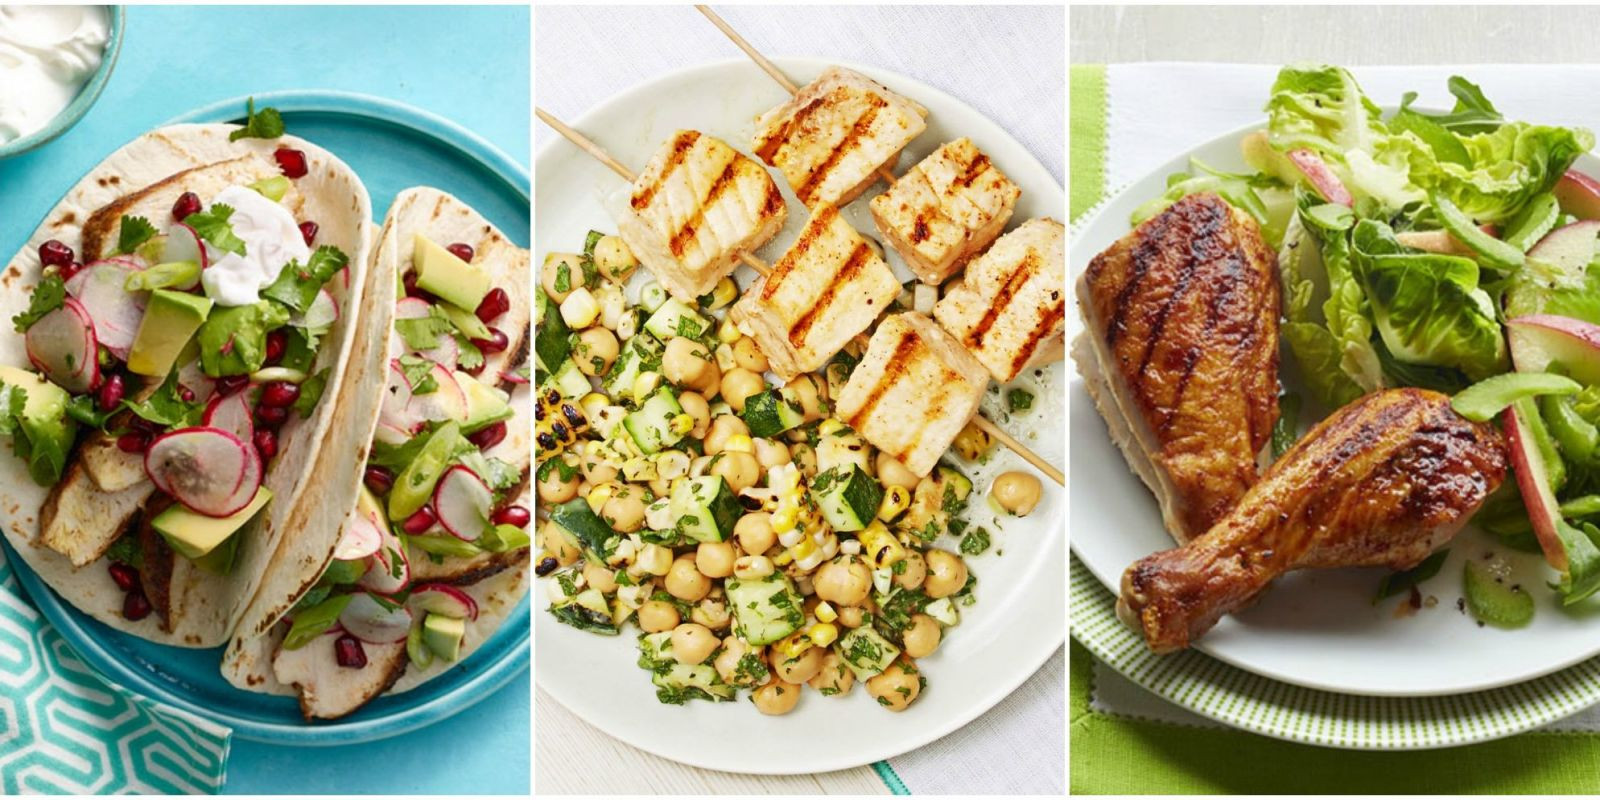 Great Summer Dinners top 20 60 Best Summer Dinner Recipes Quick and Easy Summer Meal